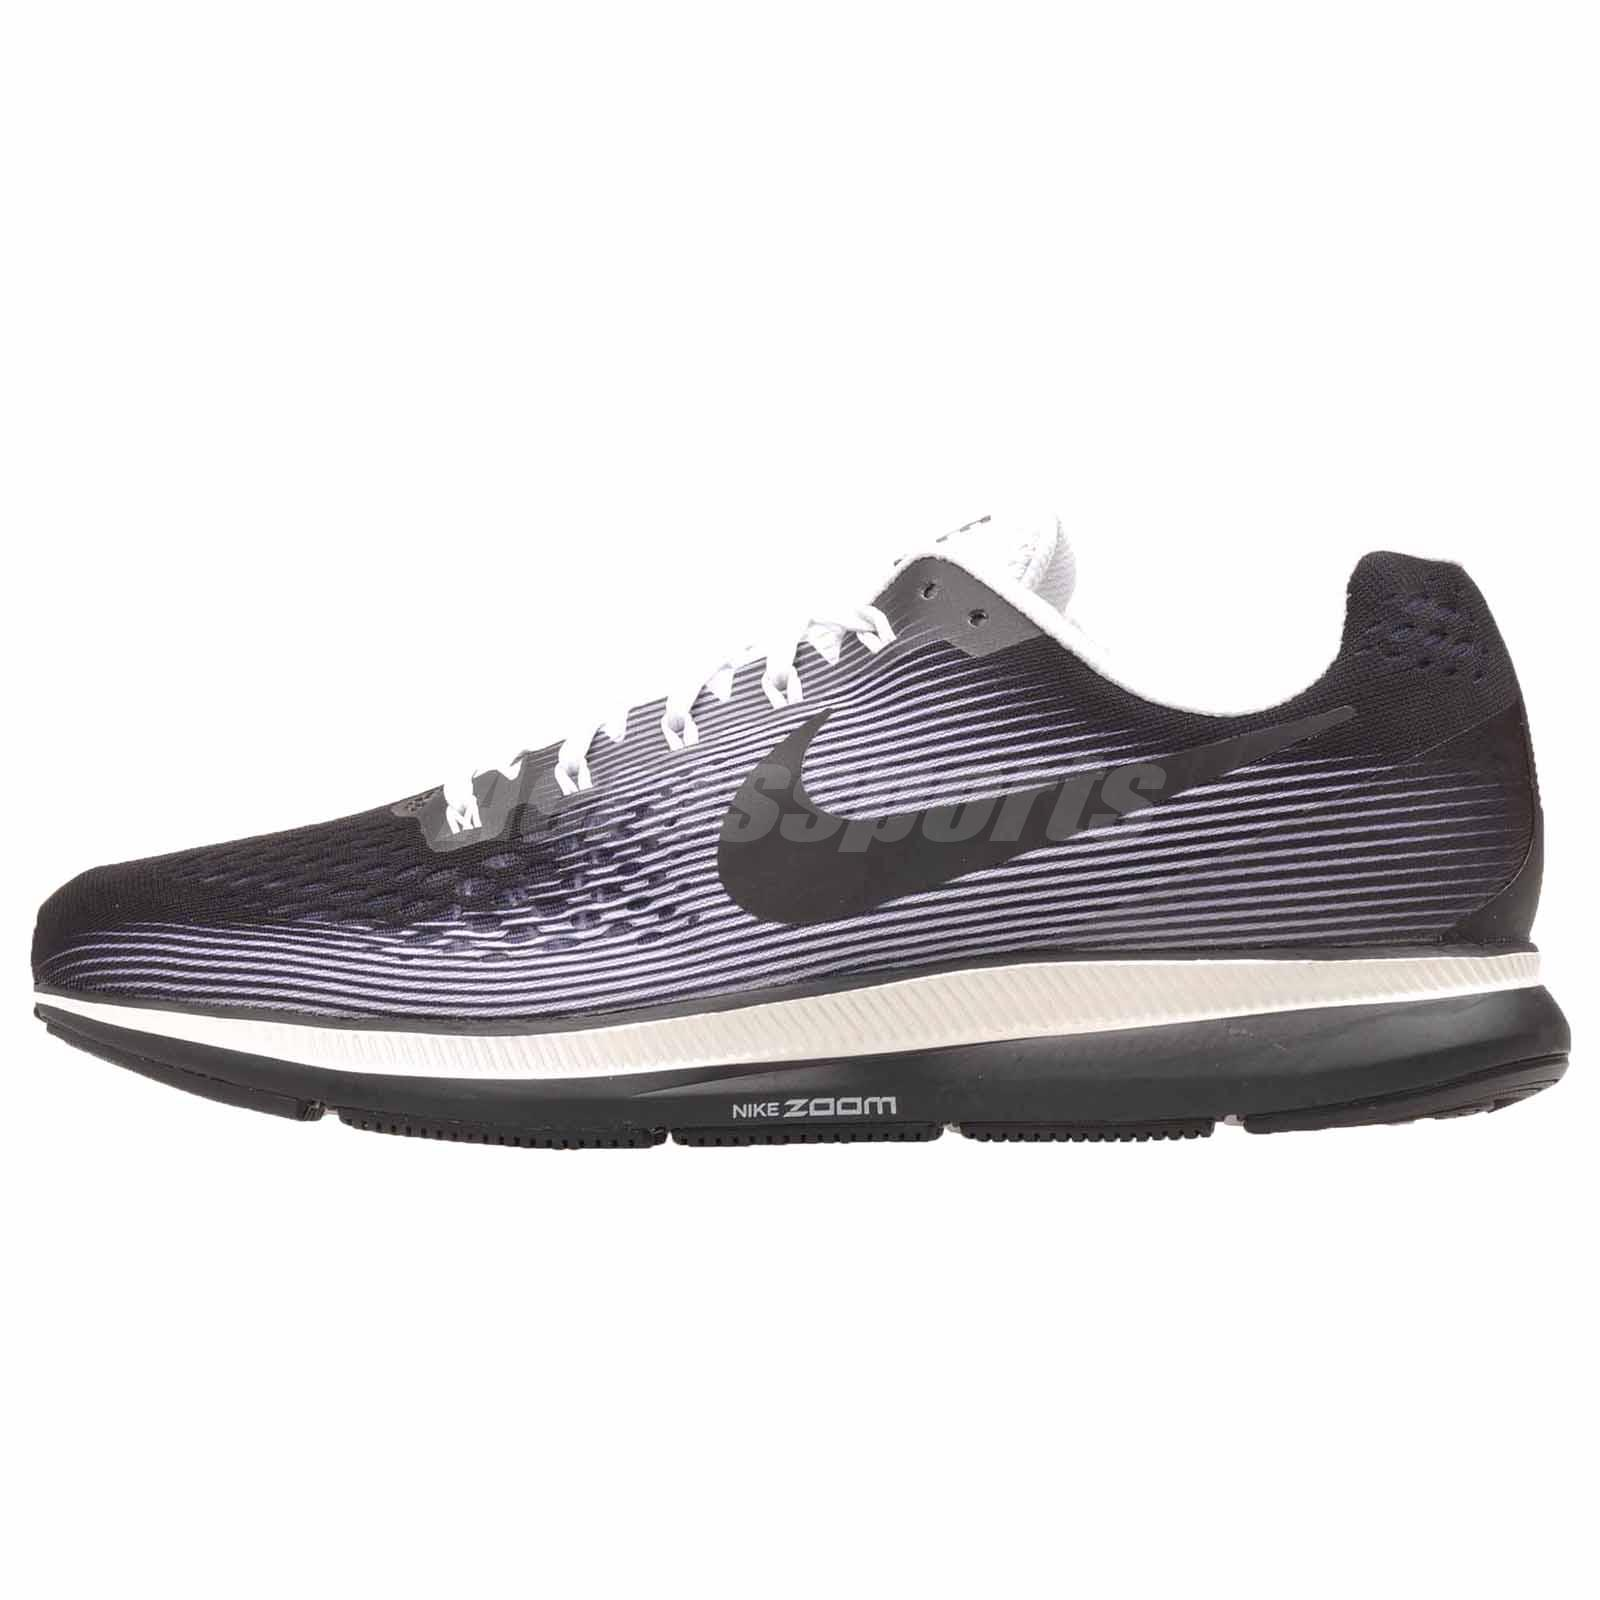 67872ae40b2ed Details about Nike Air Zoom Pegasus 34 LE Running Mens Shoes Black White  NWOB 883268-001